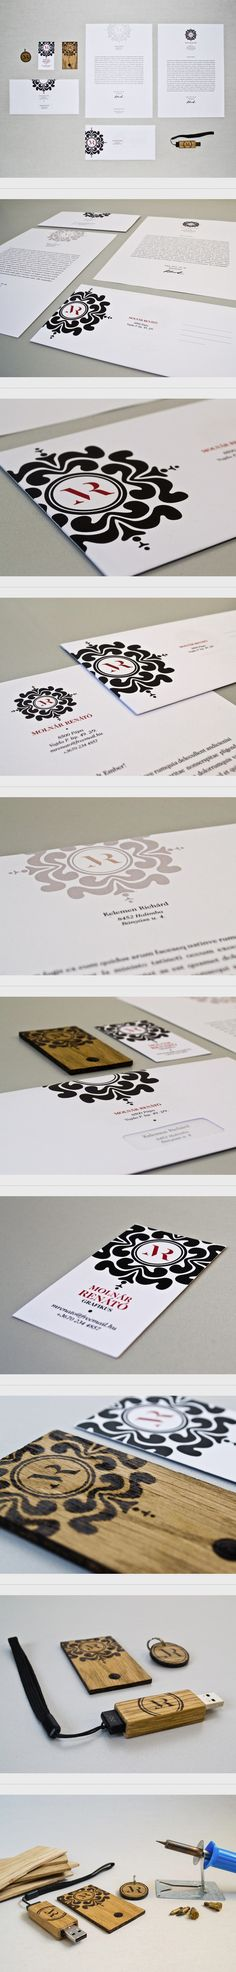 Stationary design - great use of black and white. I like the vintage detail and reference to a stamp / wax seal.